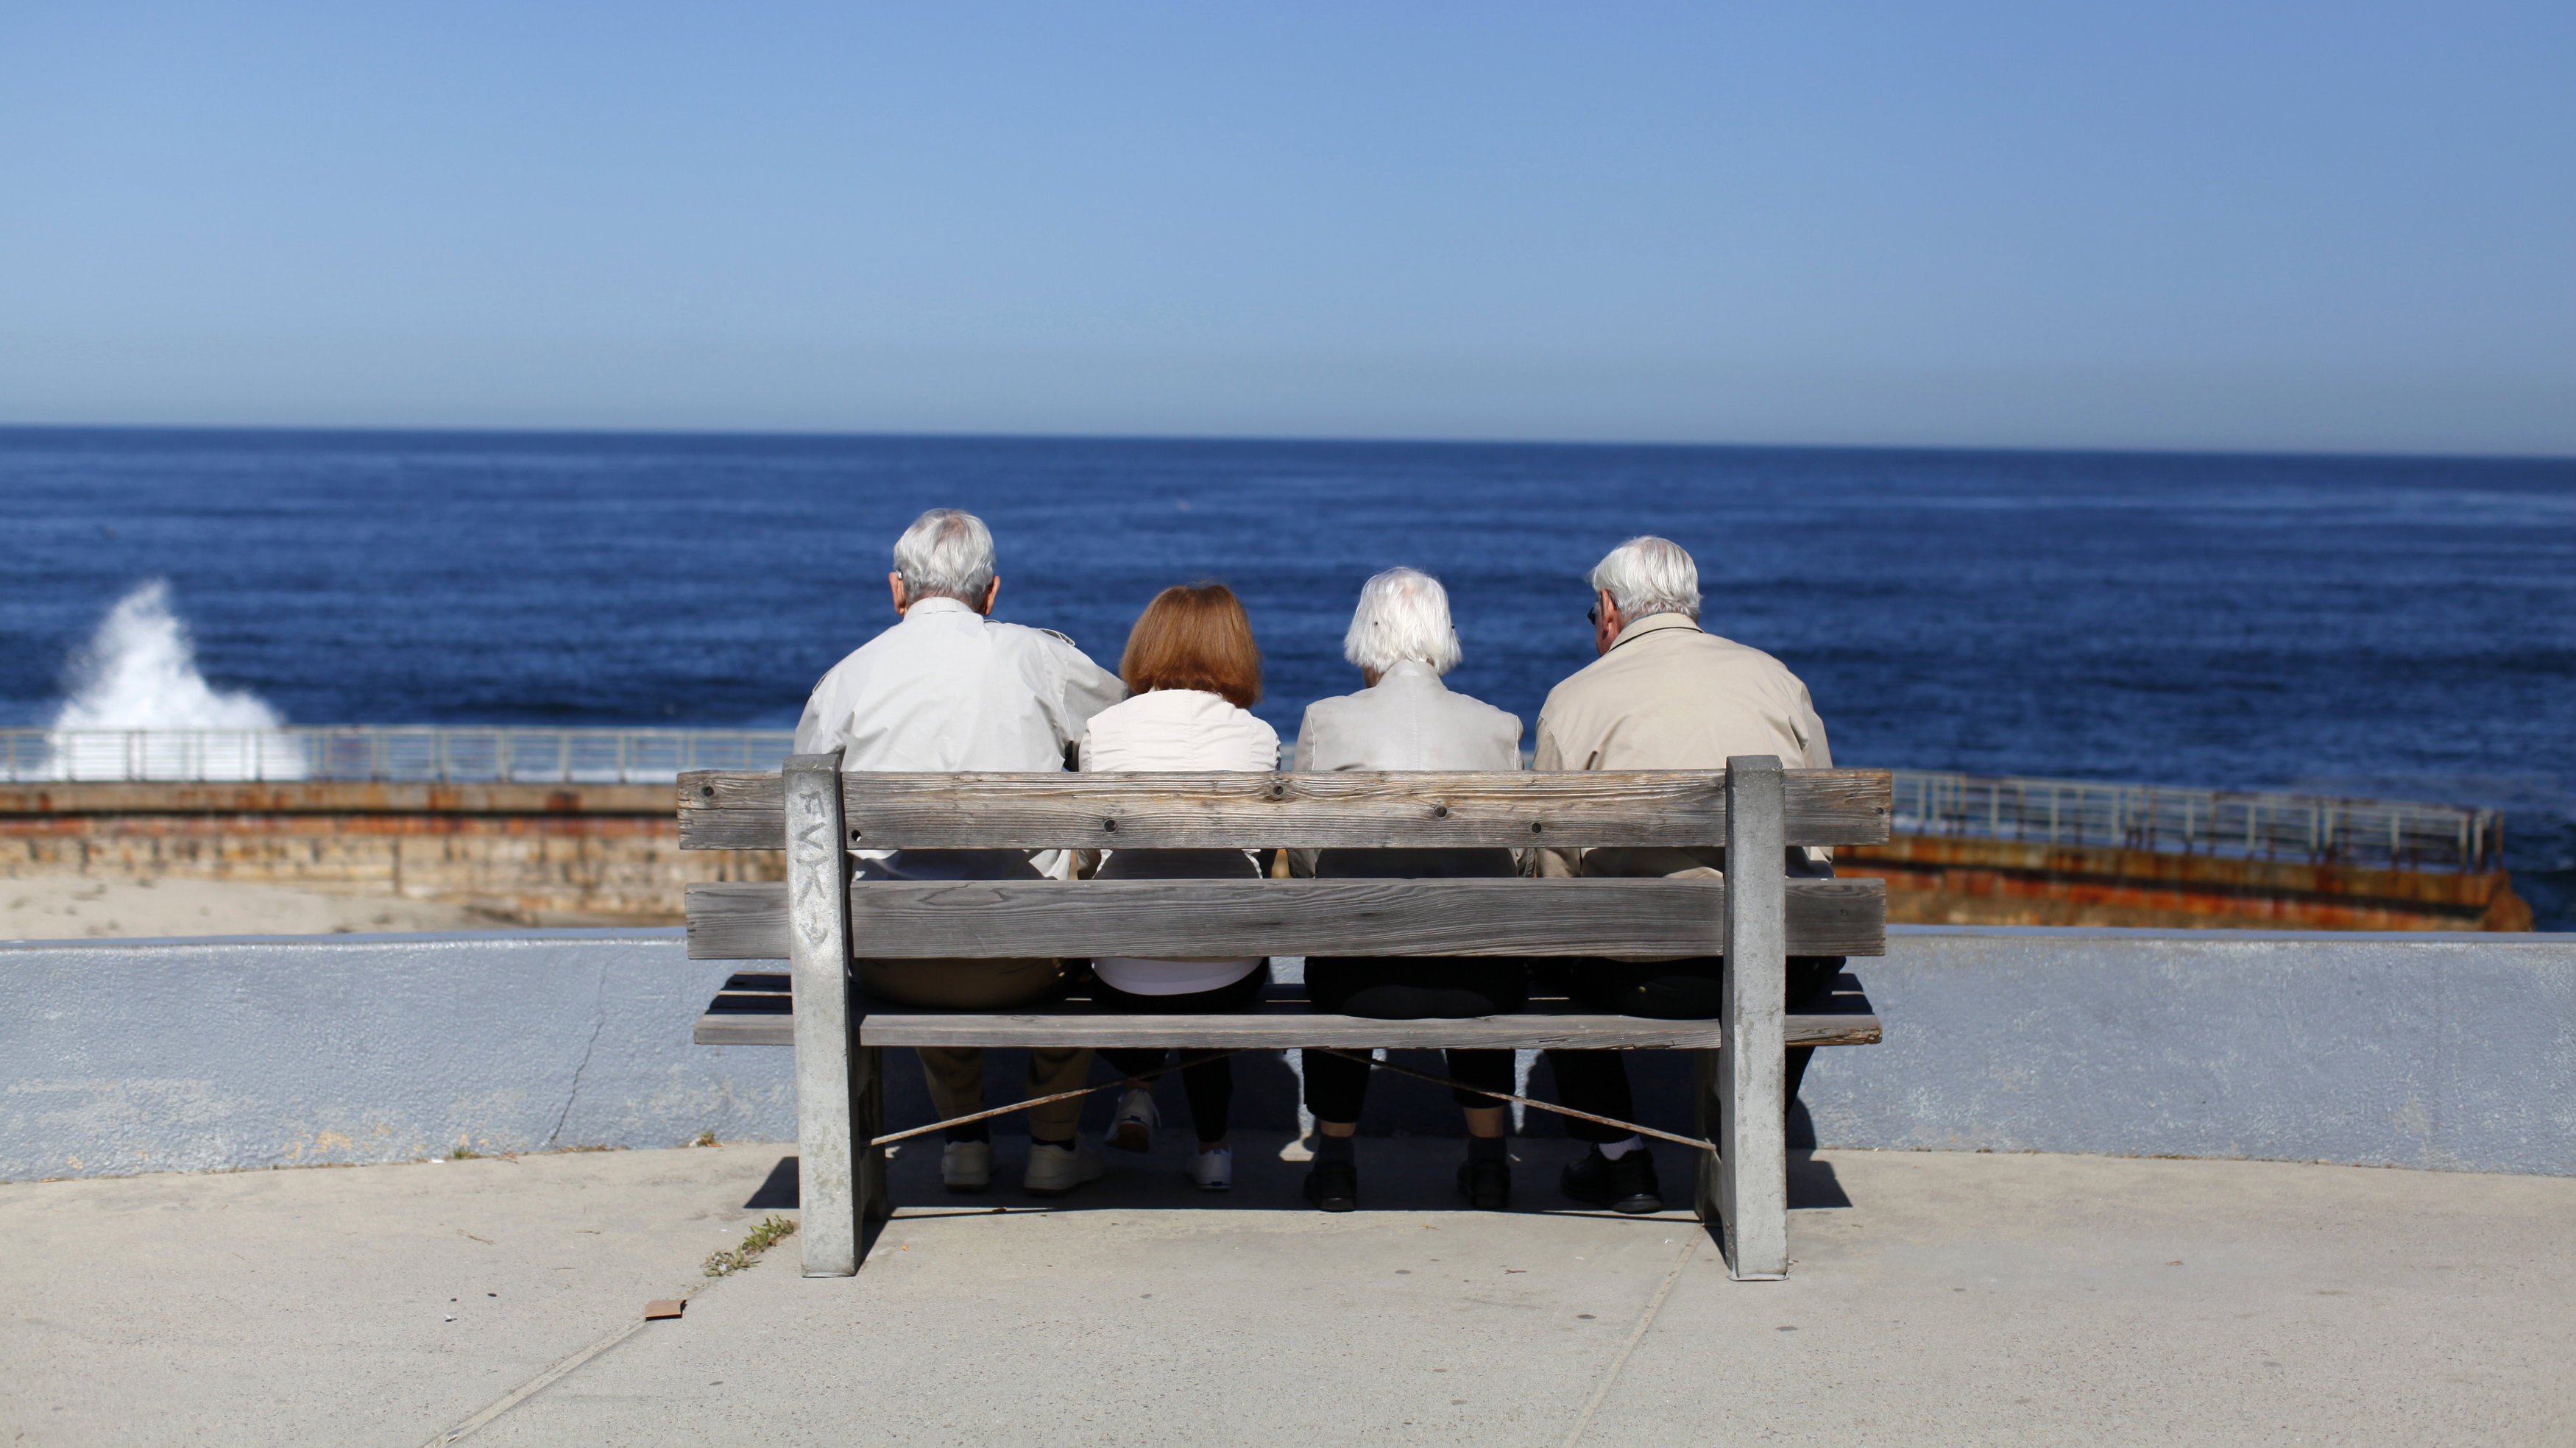 A pair of elderly couples view the ocean and waves along the beach in La Jolla, California March 8, 2012.